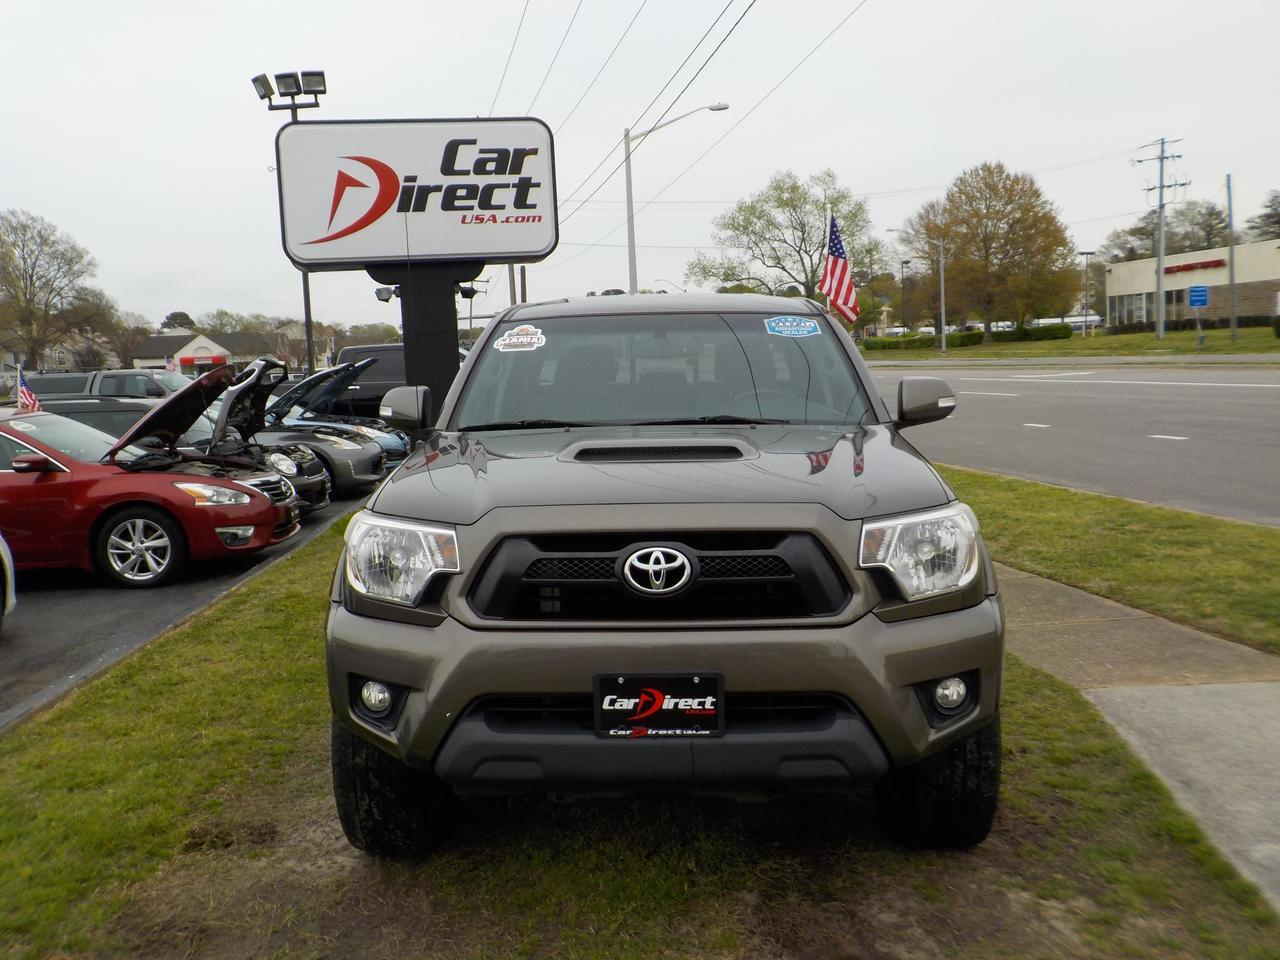 2012 TOYOTA TACOMA TRD SPORT DOUBLE CAB LONG BED 4X4, WARRANTY, BACKUP CAMERA,  BLUETOOTH, TOW, KEYLESS ENTRY, AUX PORT Virginia Beach VA